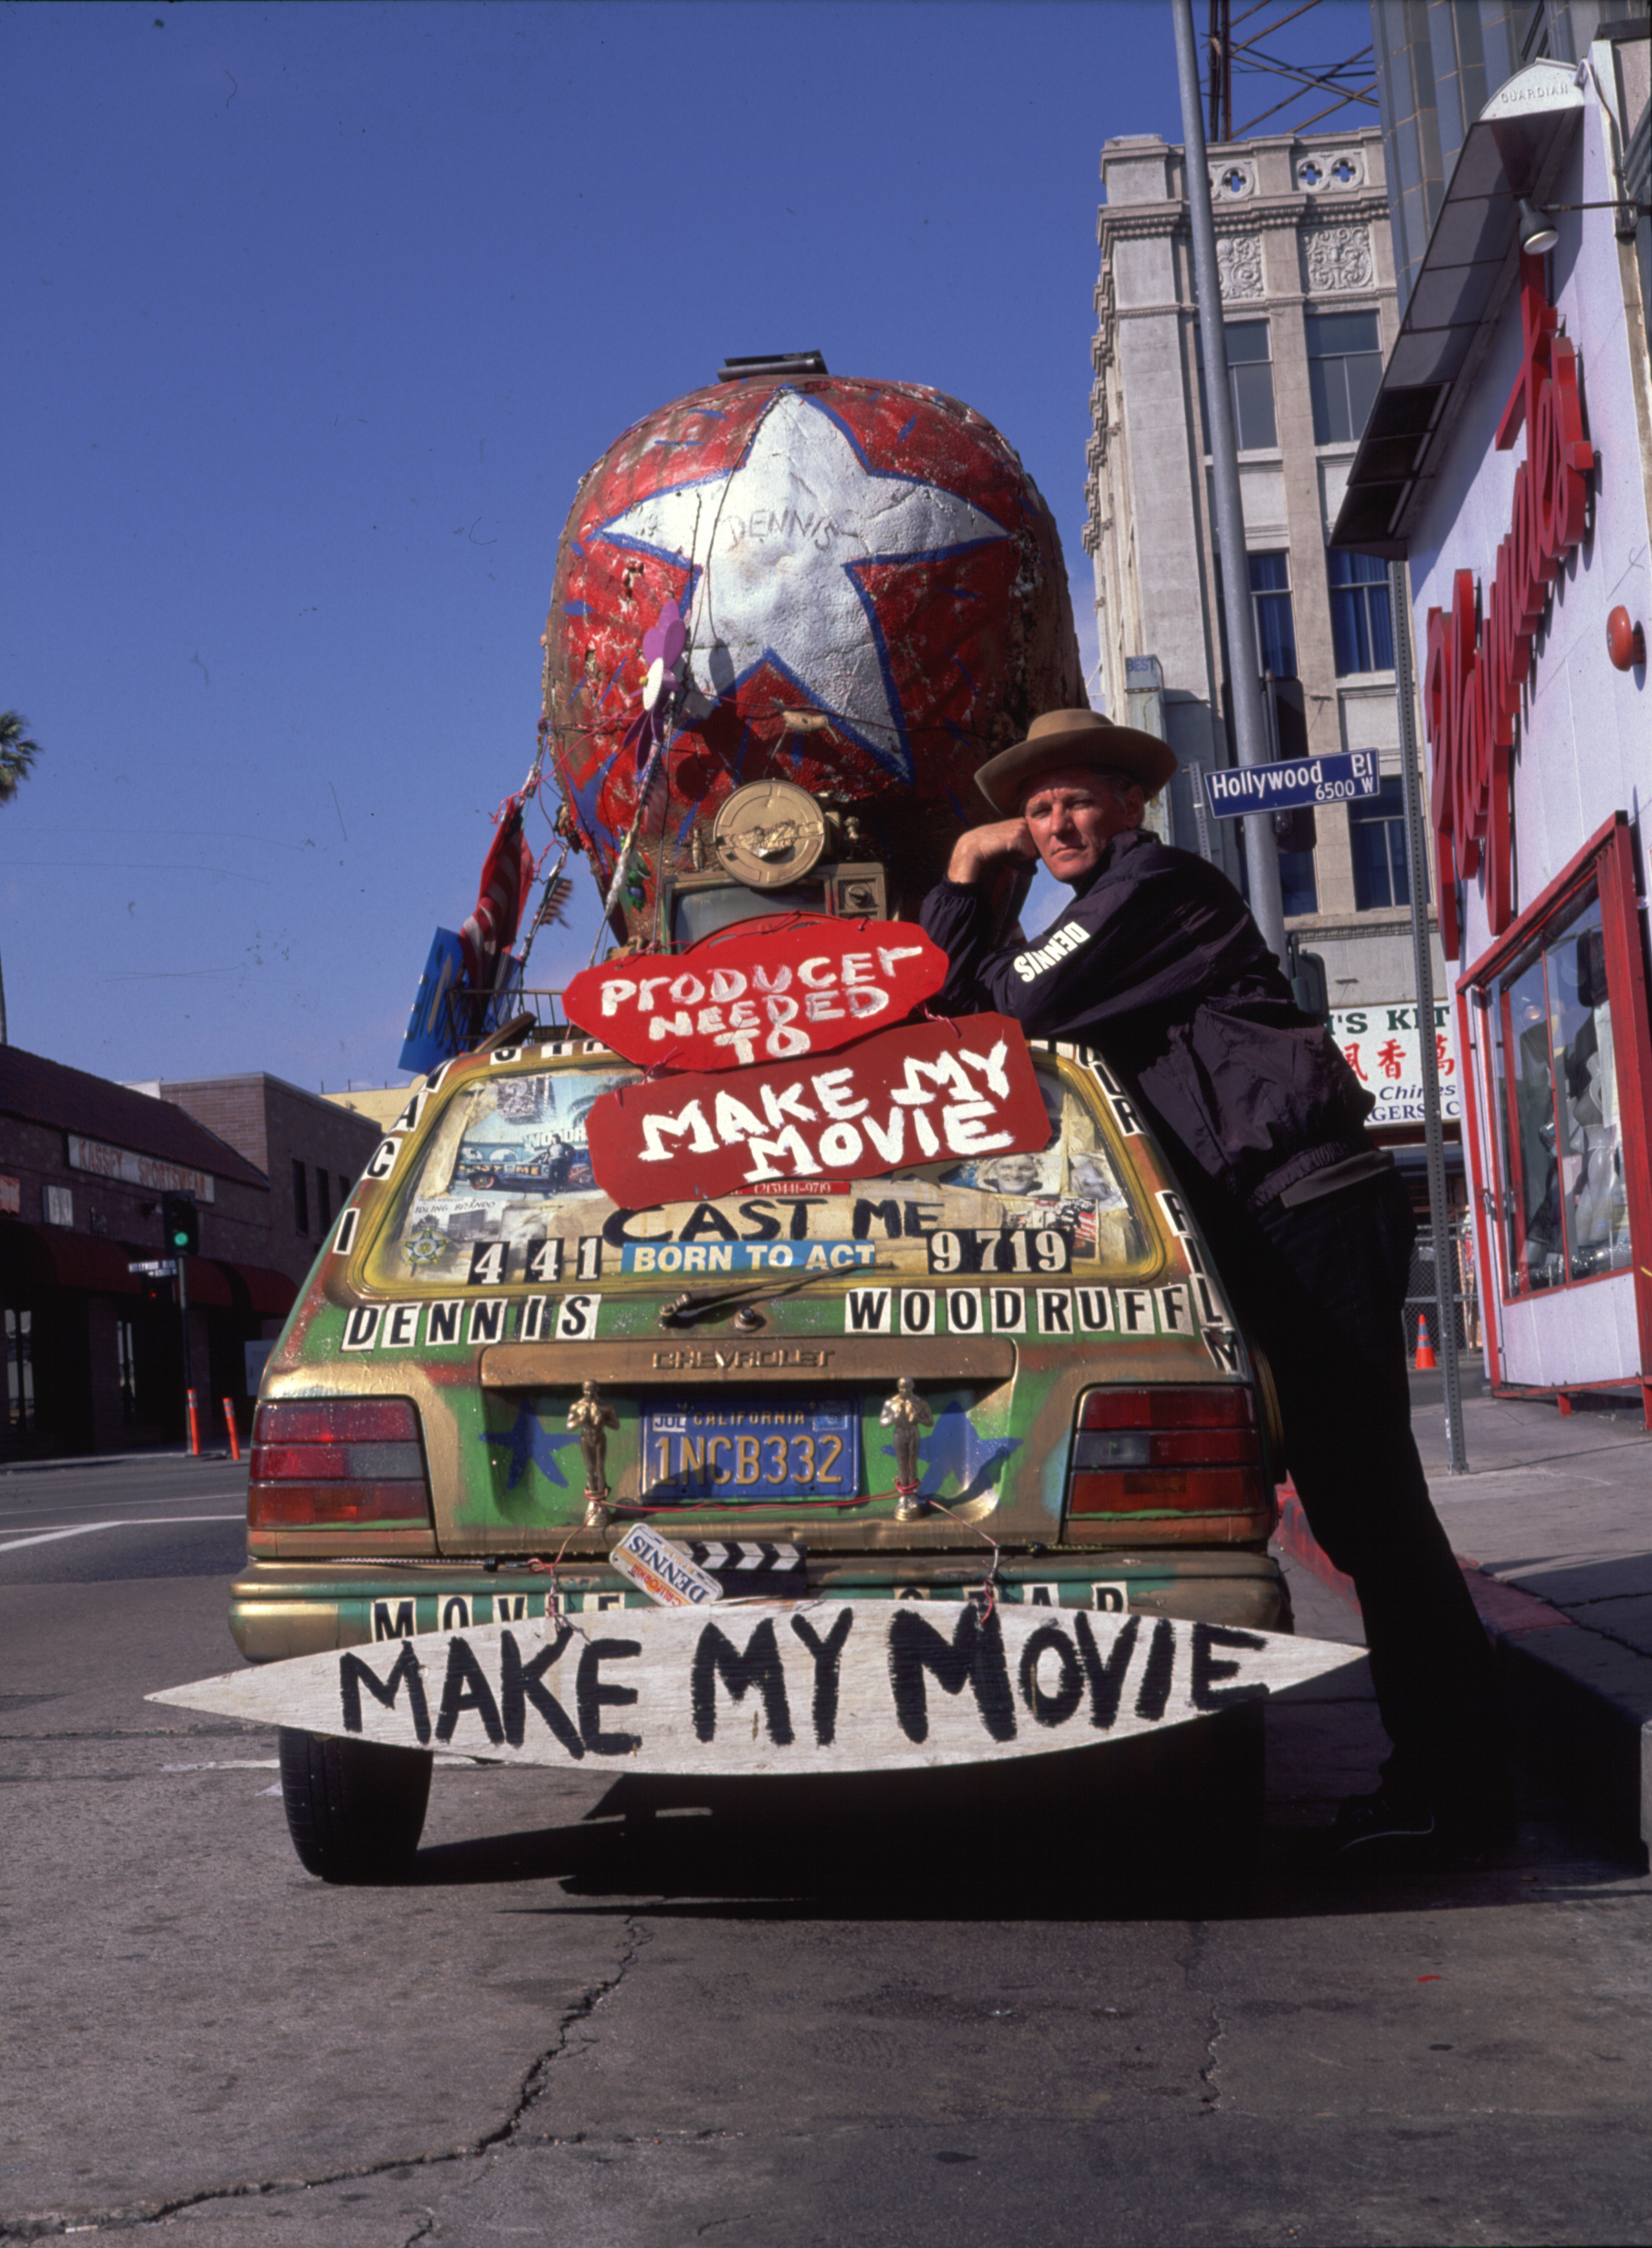 Dennis Woodruff with one of his fabulous art cars. Photo by Harrod Blank at www.artcaragency.com